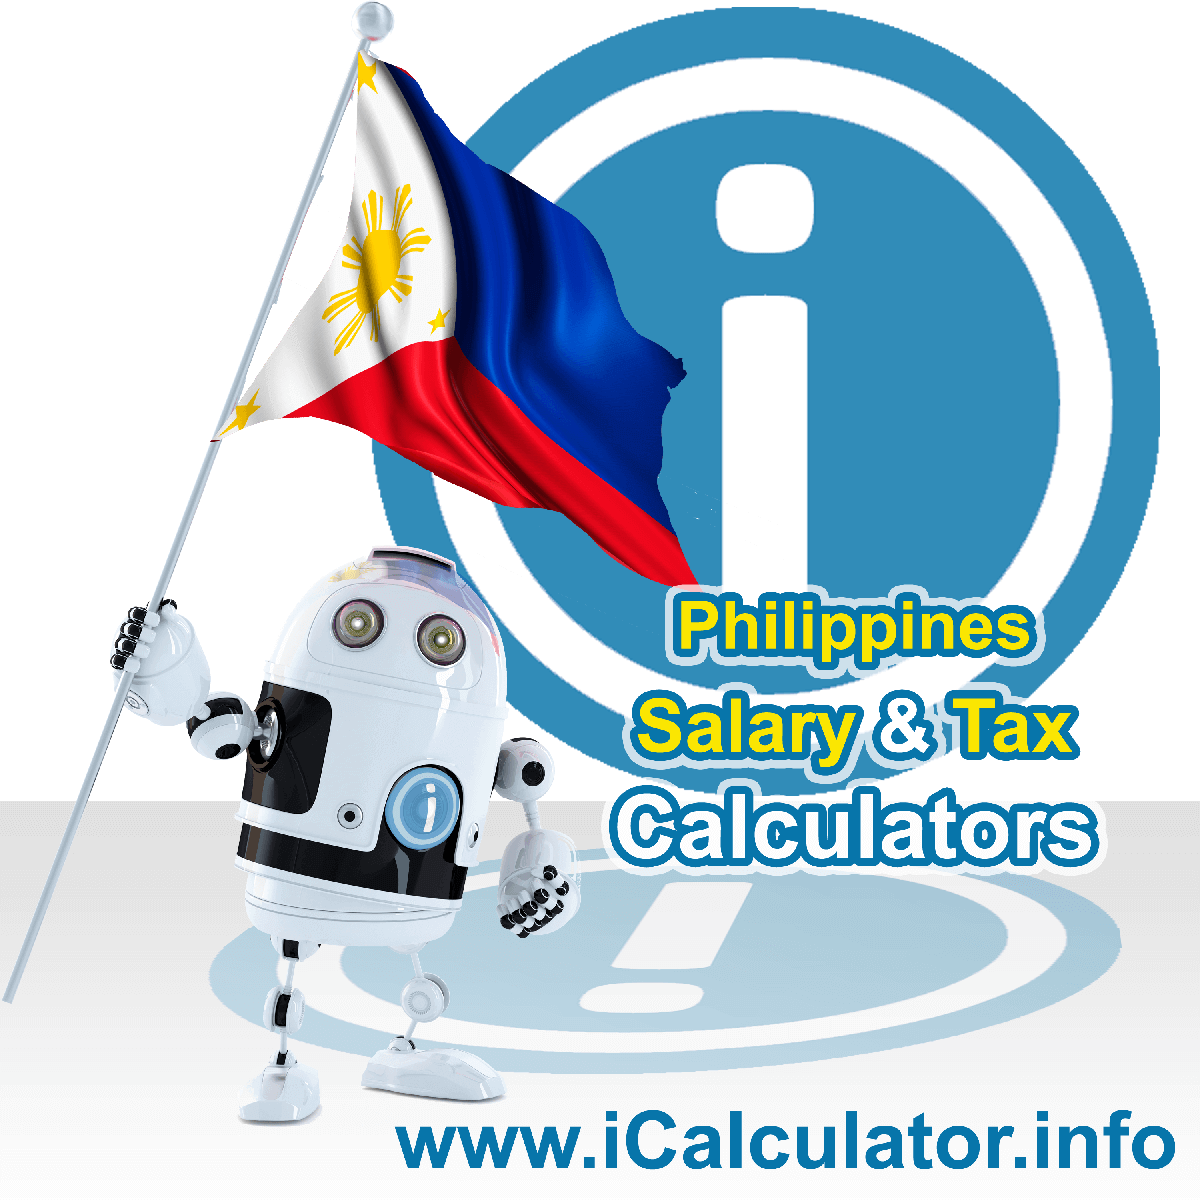 Philippines Wage Calculator. This image shows the Philippines flag and information relating to the tax formula for the Philippines Tax Calculator